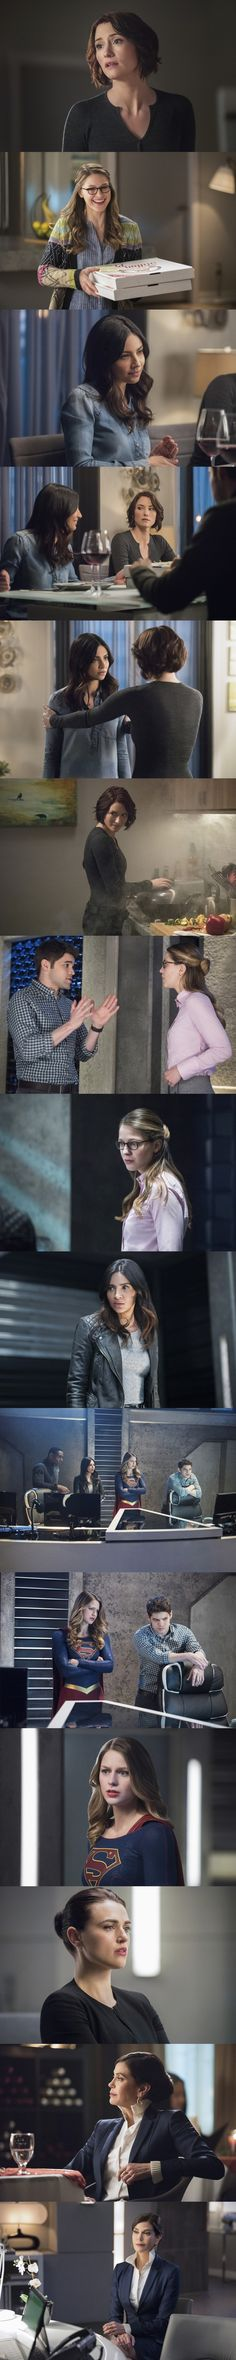 Promo pics for Supergirl 2x19! I am so excited for this one! Finally we are going to get another Sanvers centered episode and it is gonna be awesome to see Kara and Maggie team up!